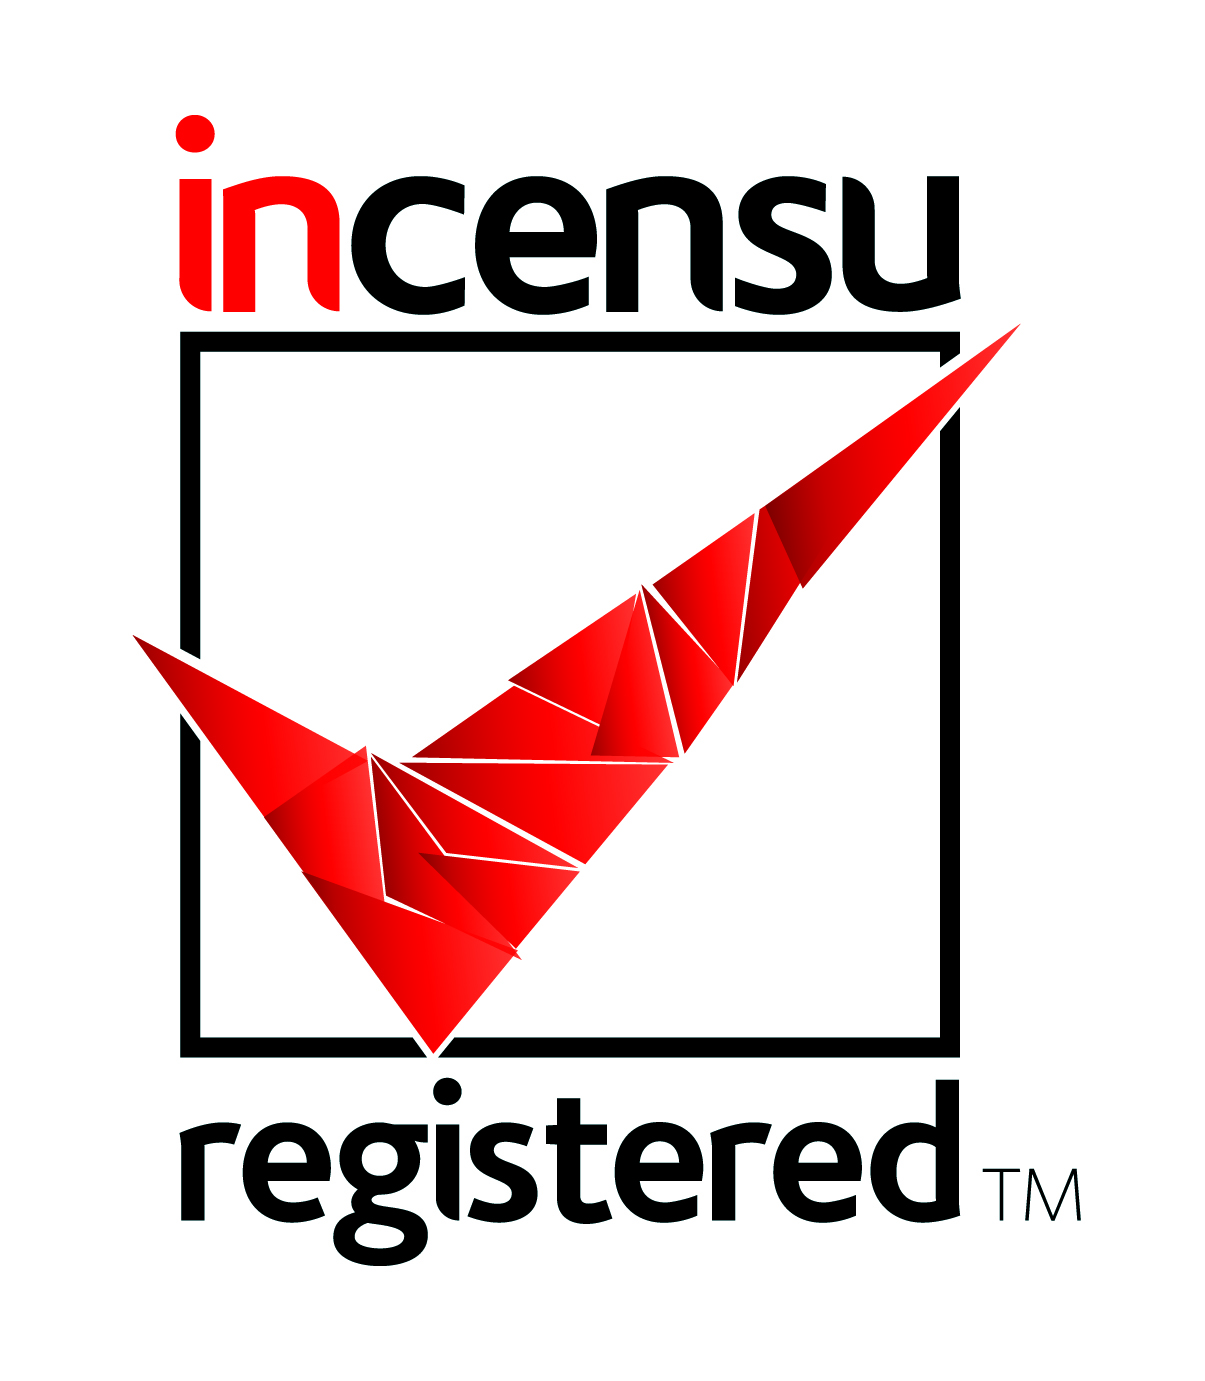 Incensu registration